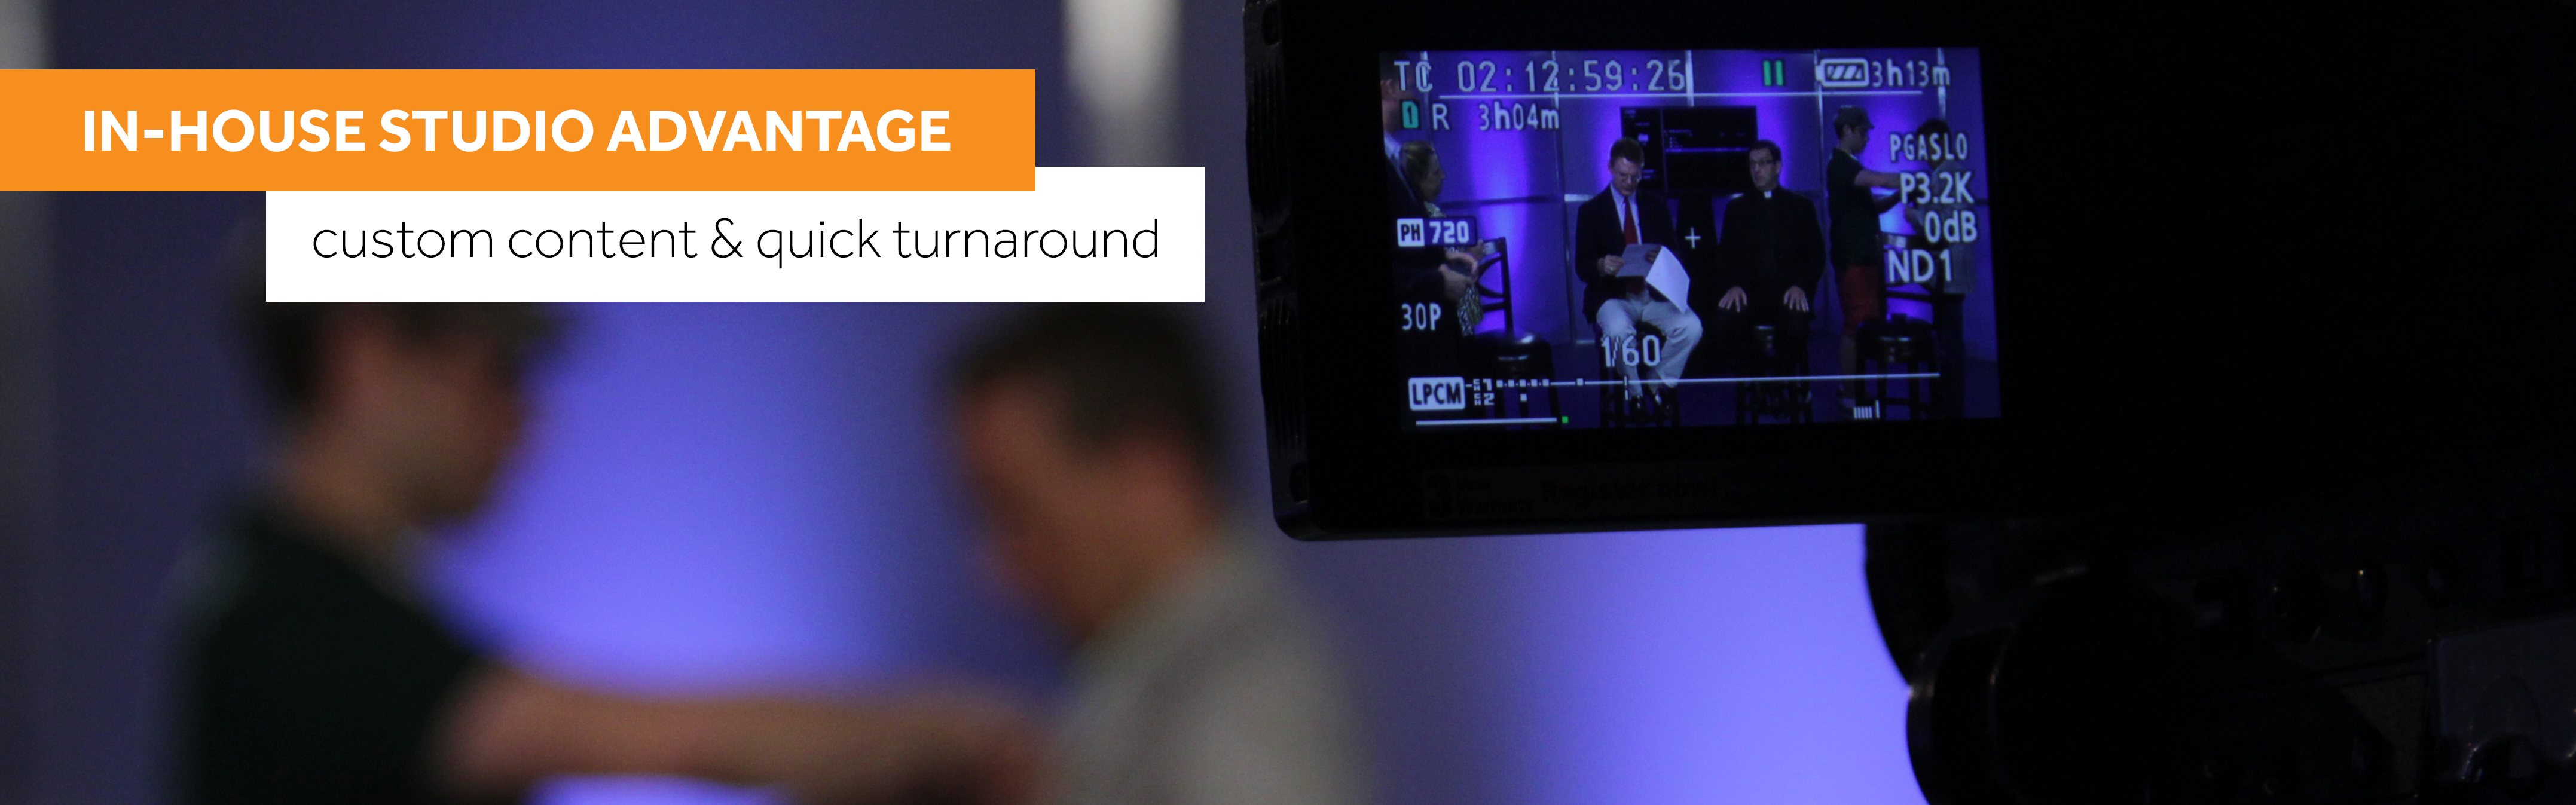 In-House Studio Advantage with Custom Content and Quick Turnaround